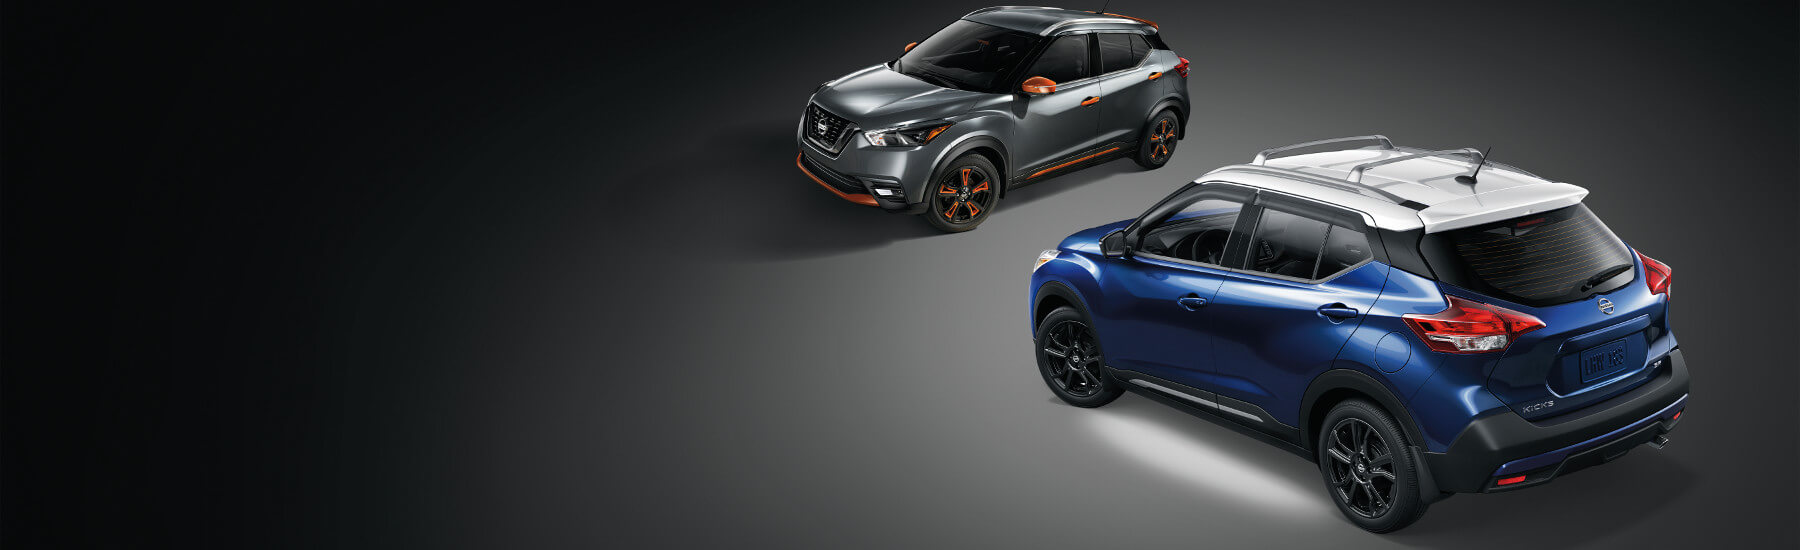 Two Nissan Kicks